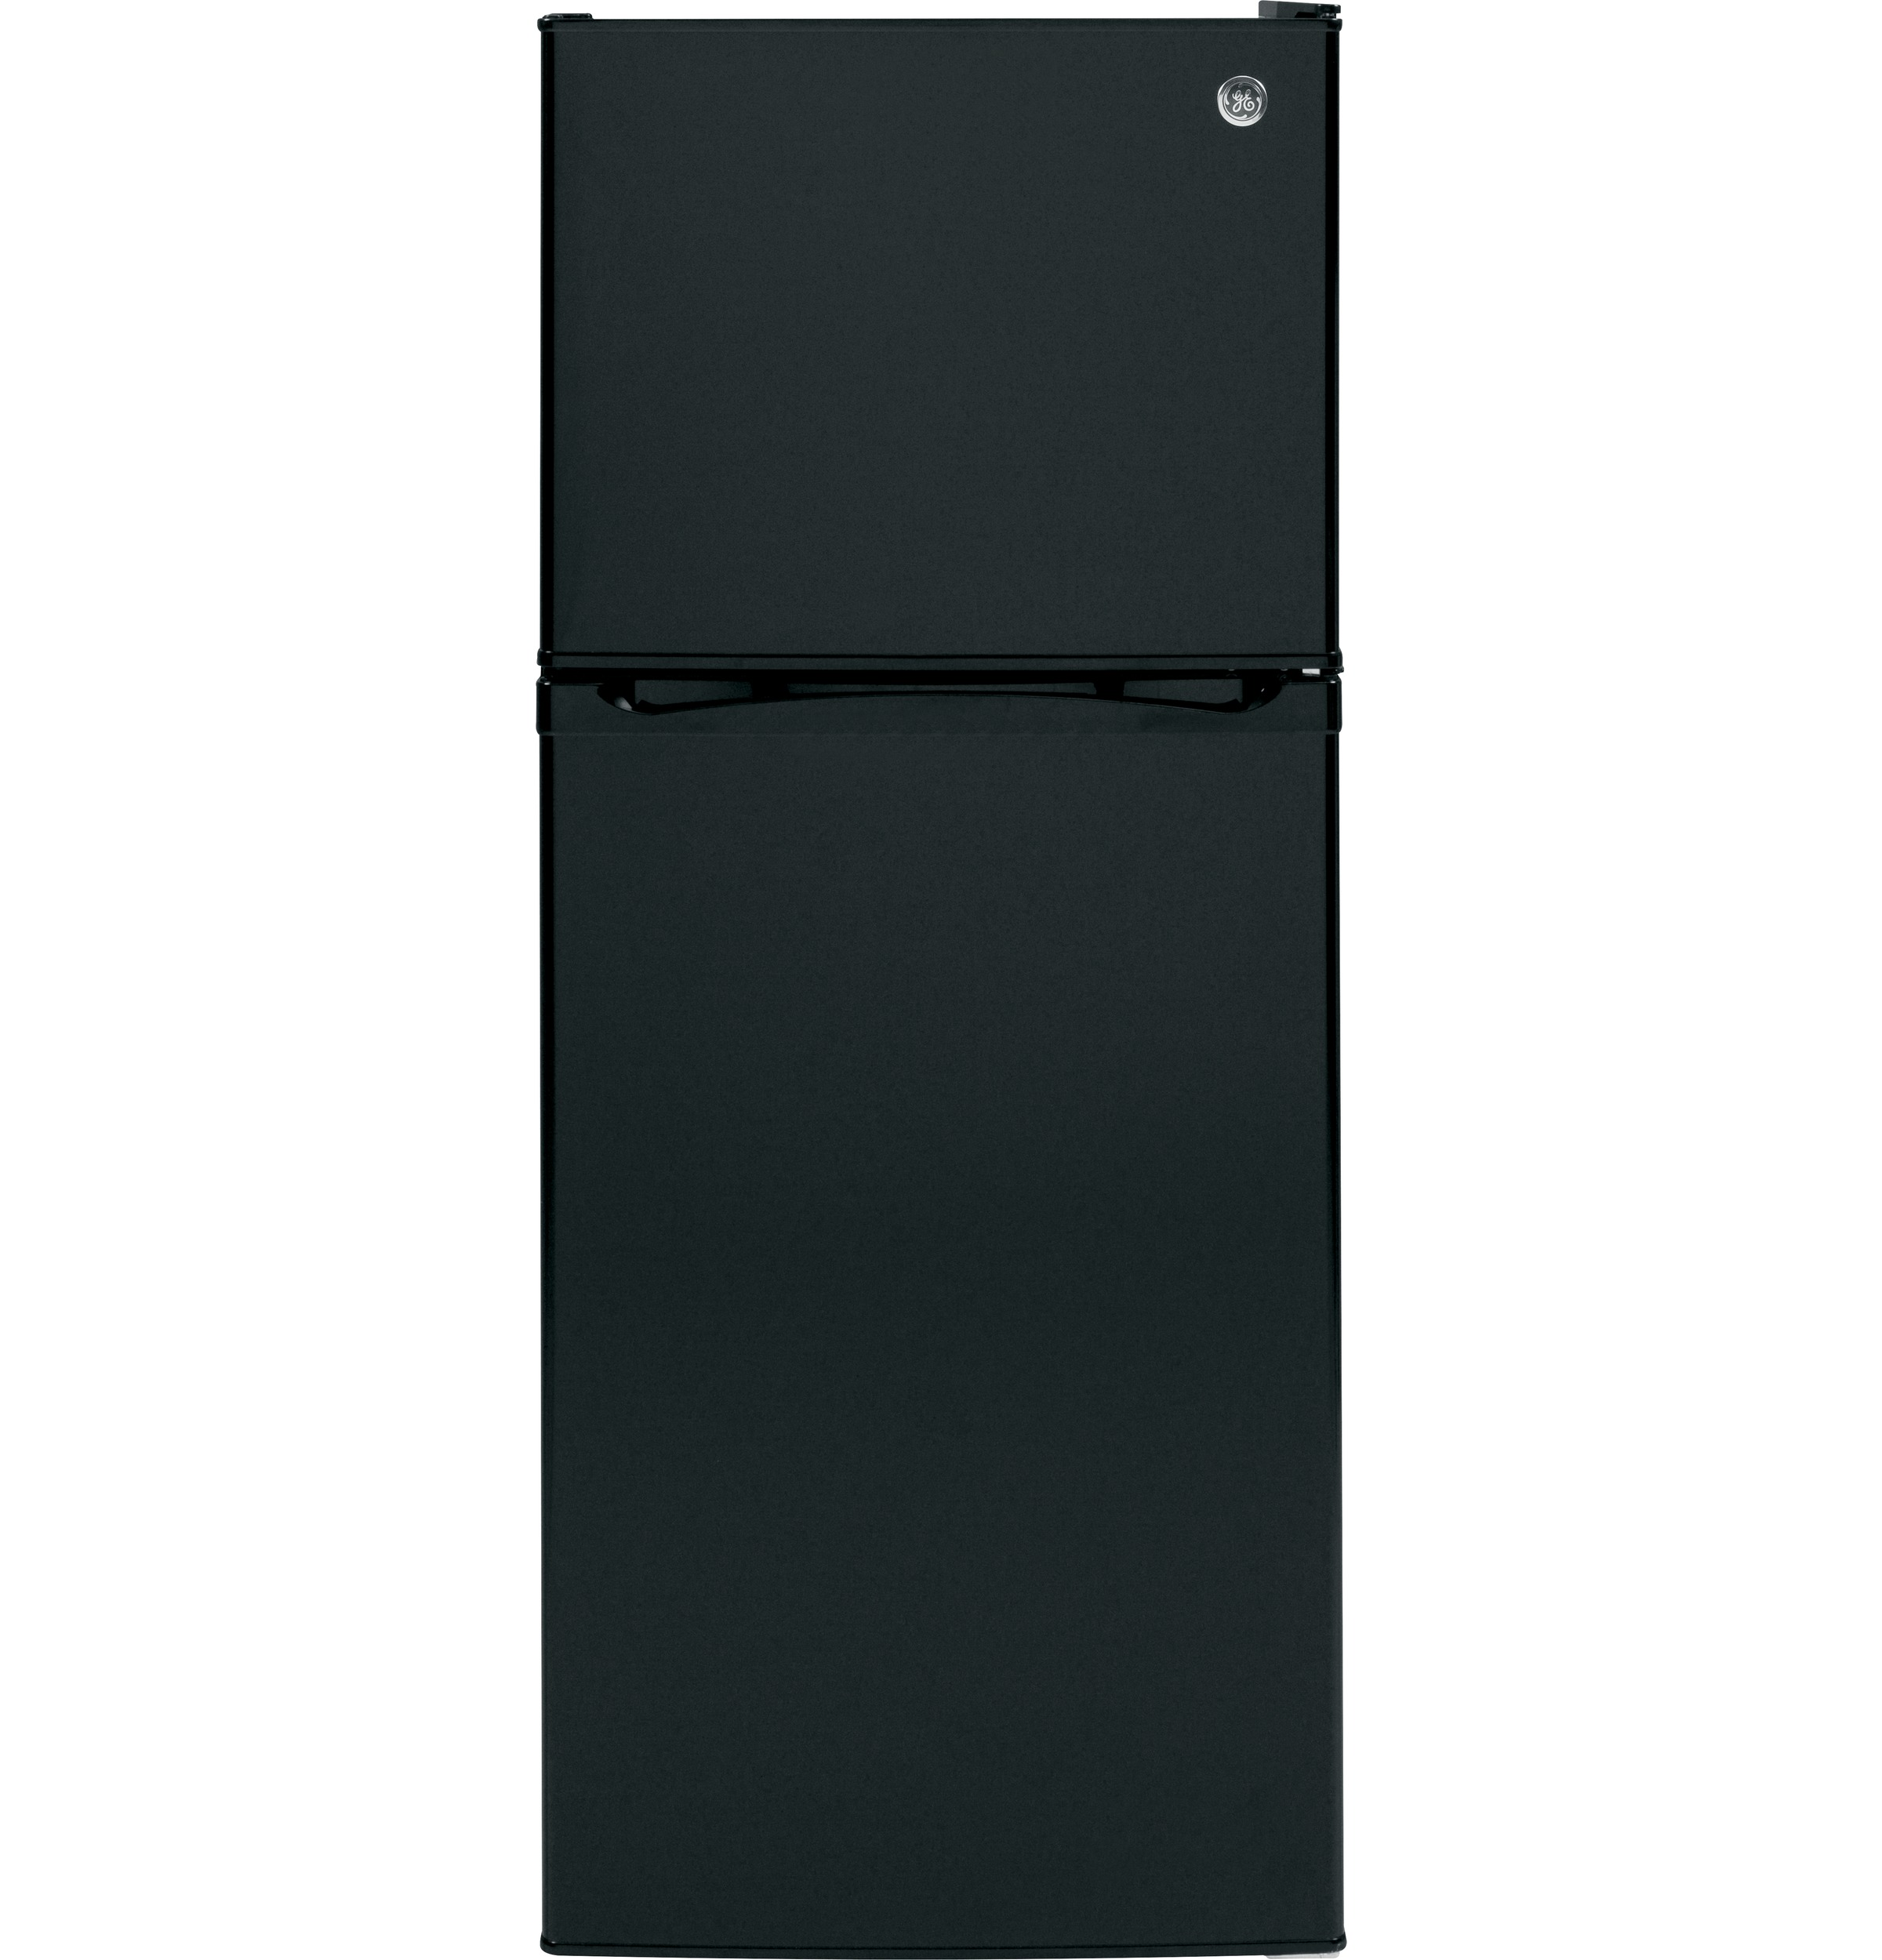 GE GE® ENERGY STAR® 11.6 cu. ft. Top-Freezer Refrigerator